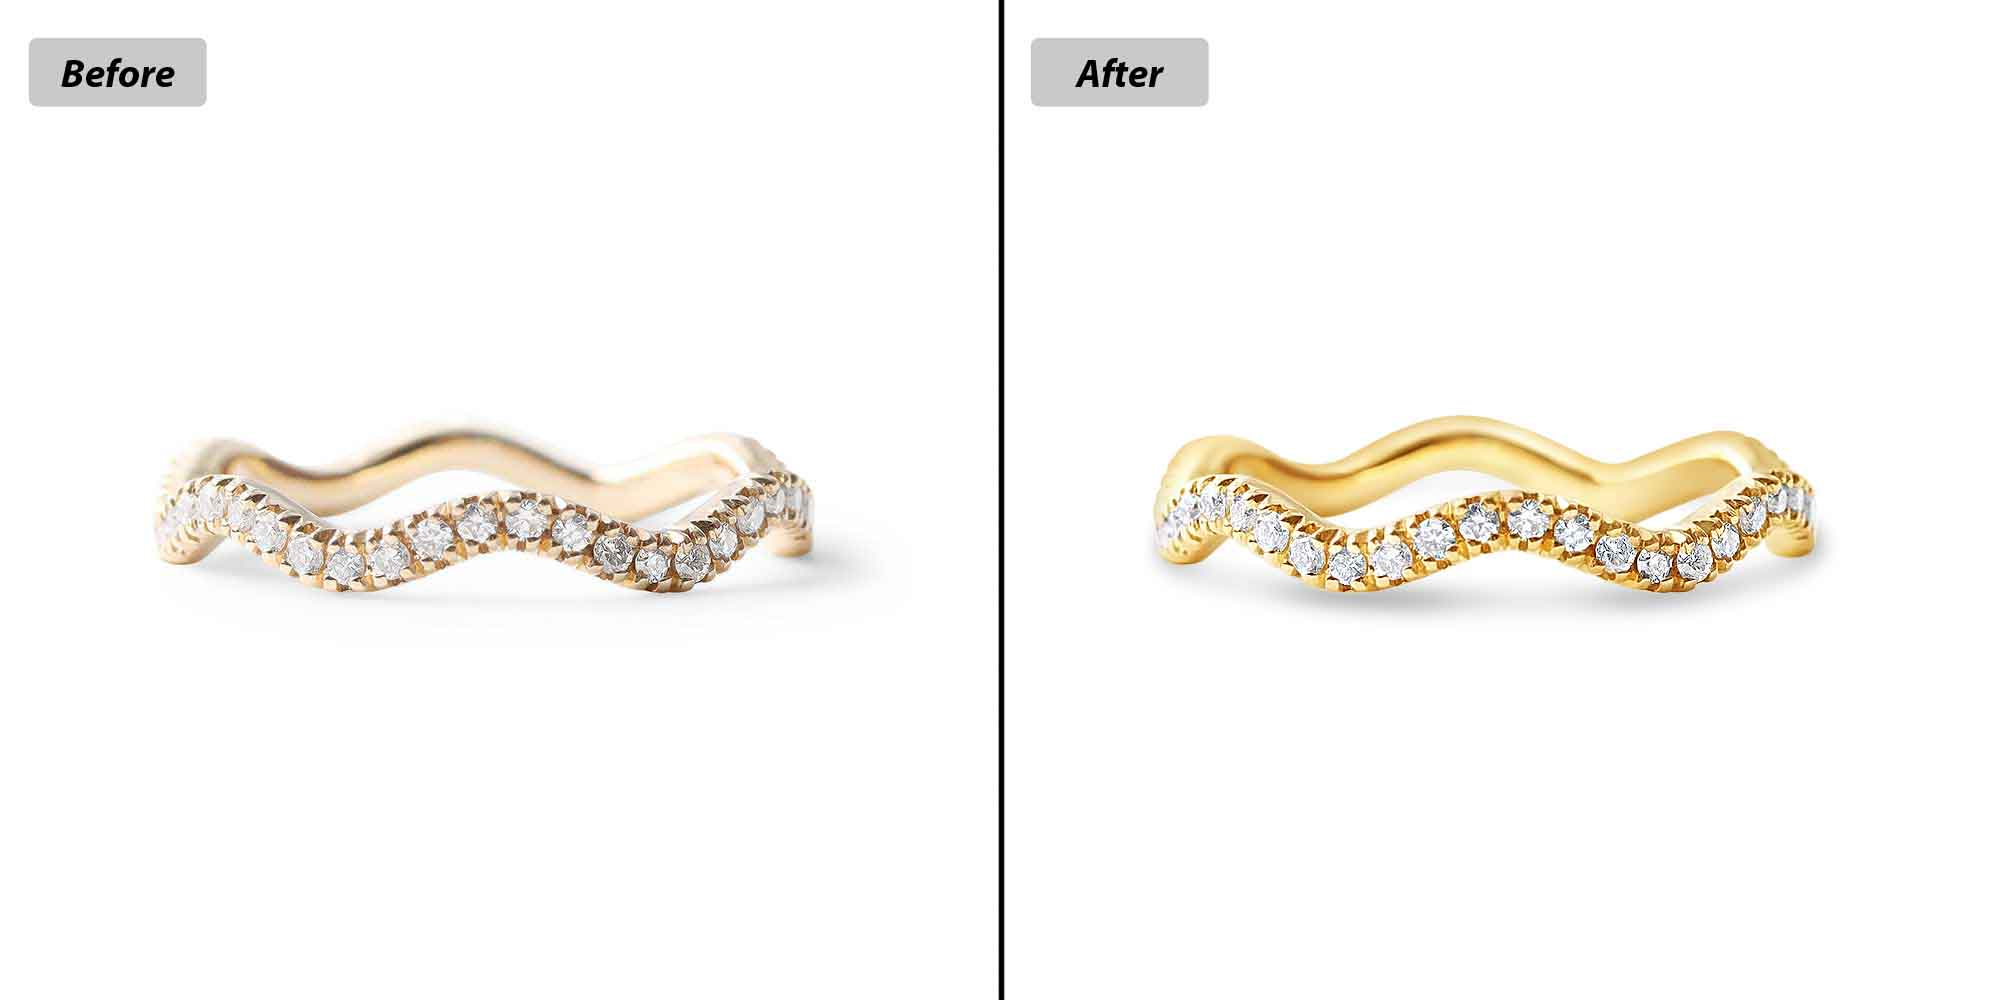 Clipping Charm_Jewellery retouch 0902